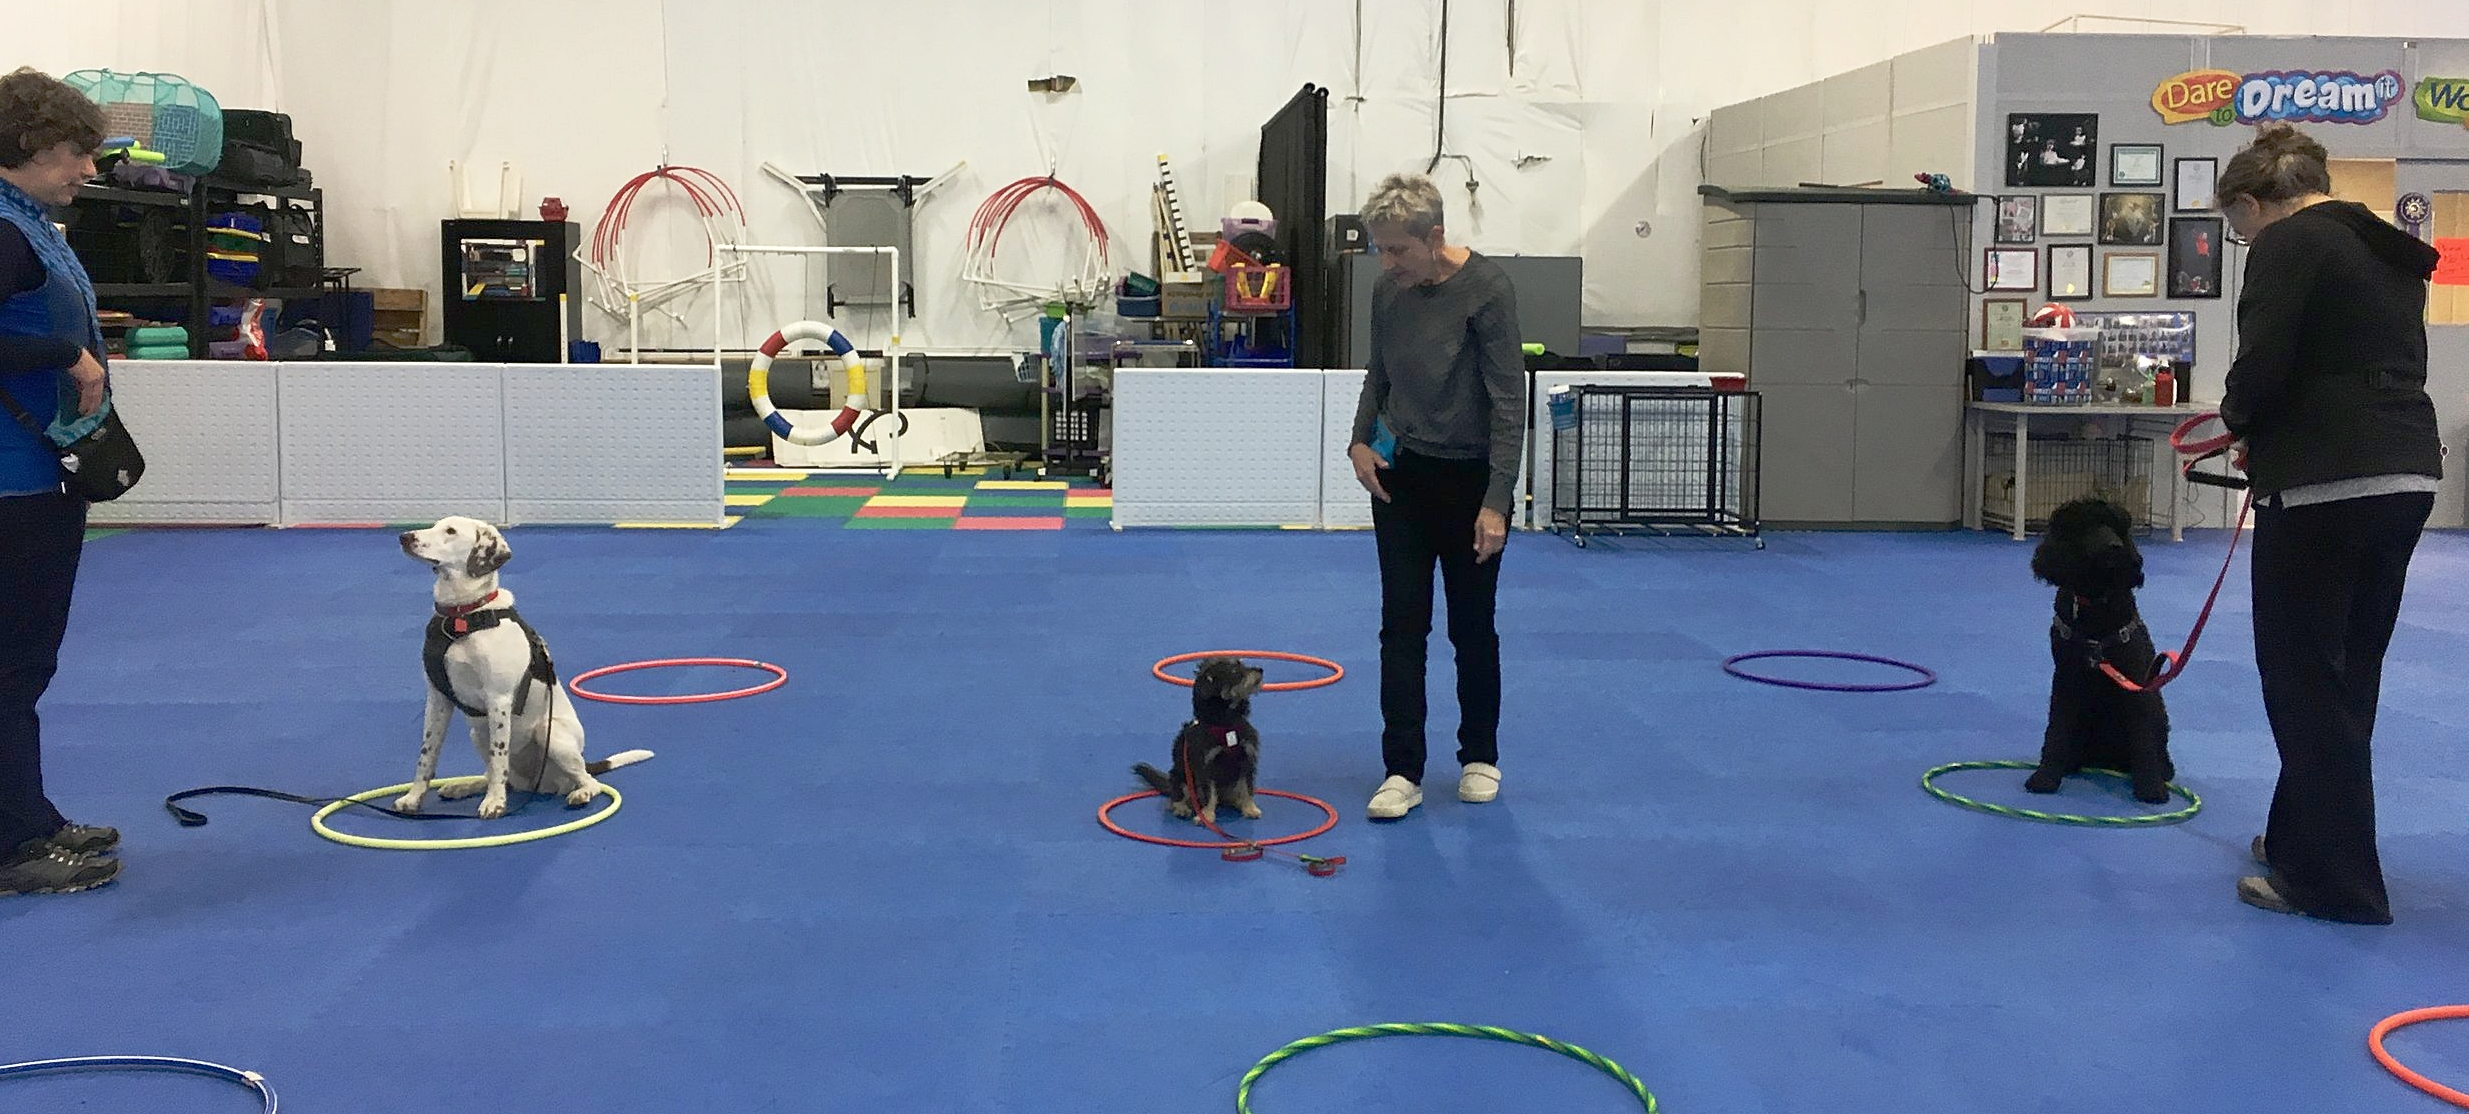 Students at the Performance Annex get their feet wet in my K9 Games class, which is full of challenges.